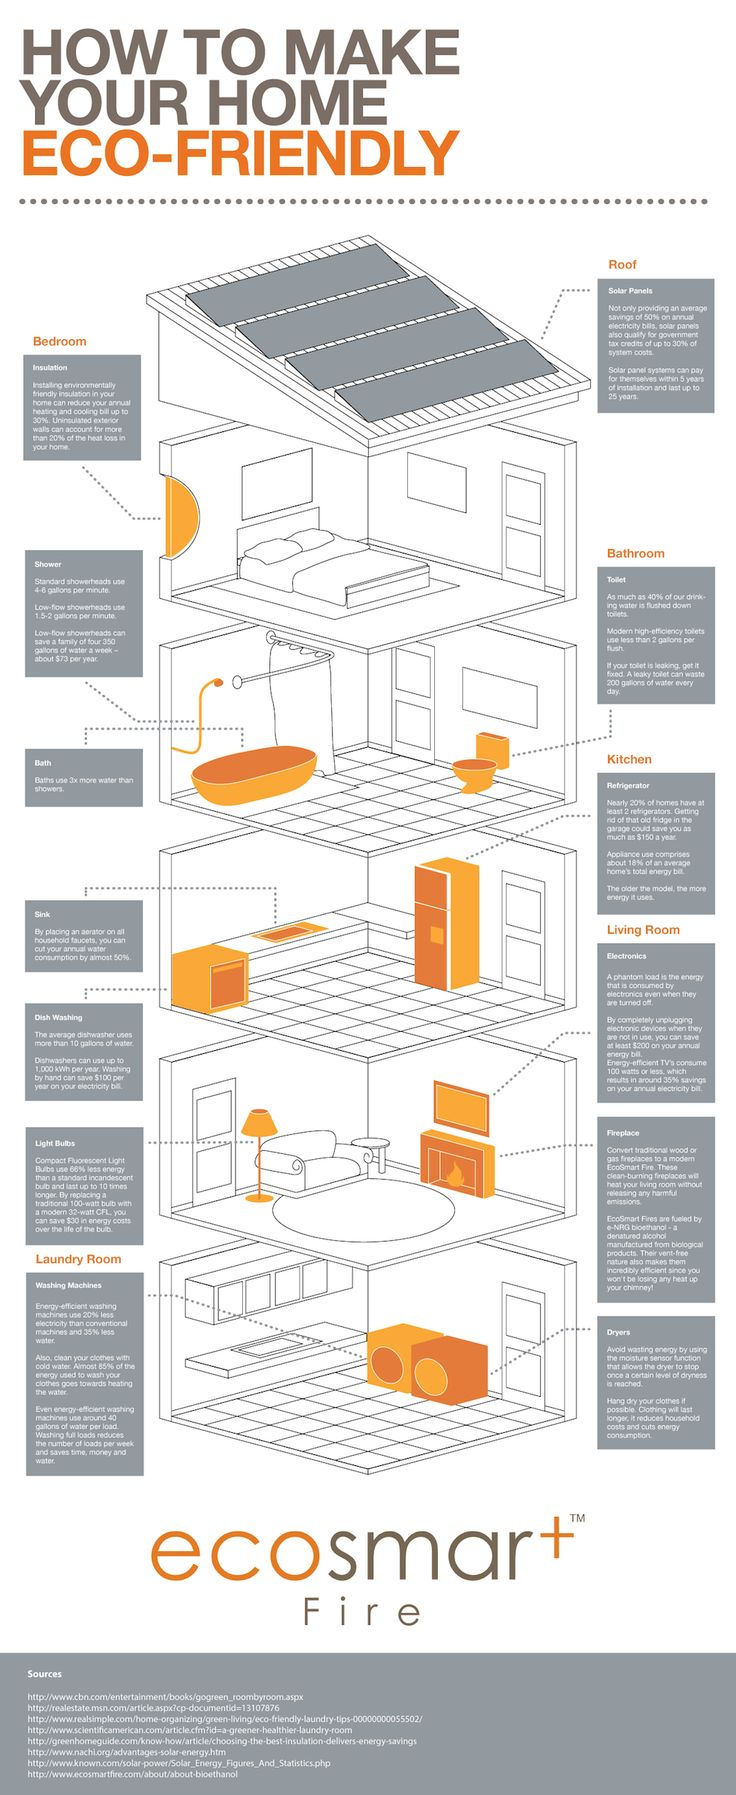 49 Best Infographic Images On Pinterest Architecture Cities And